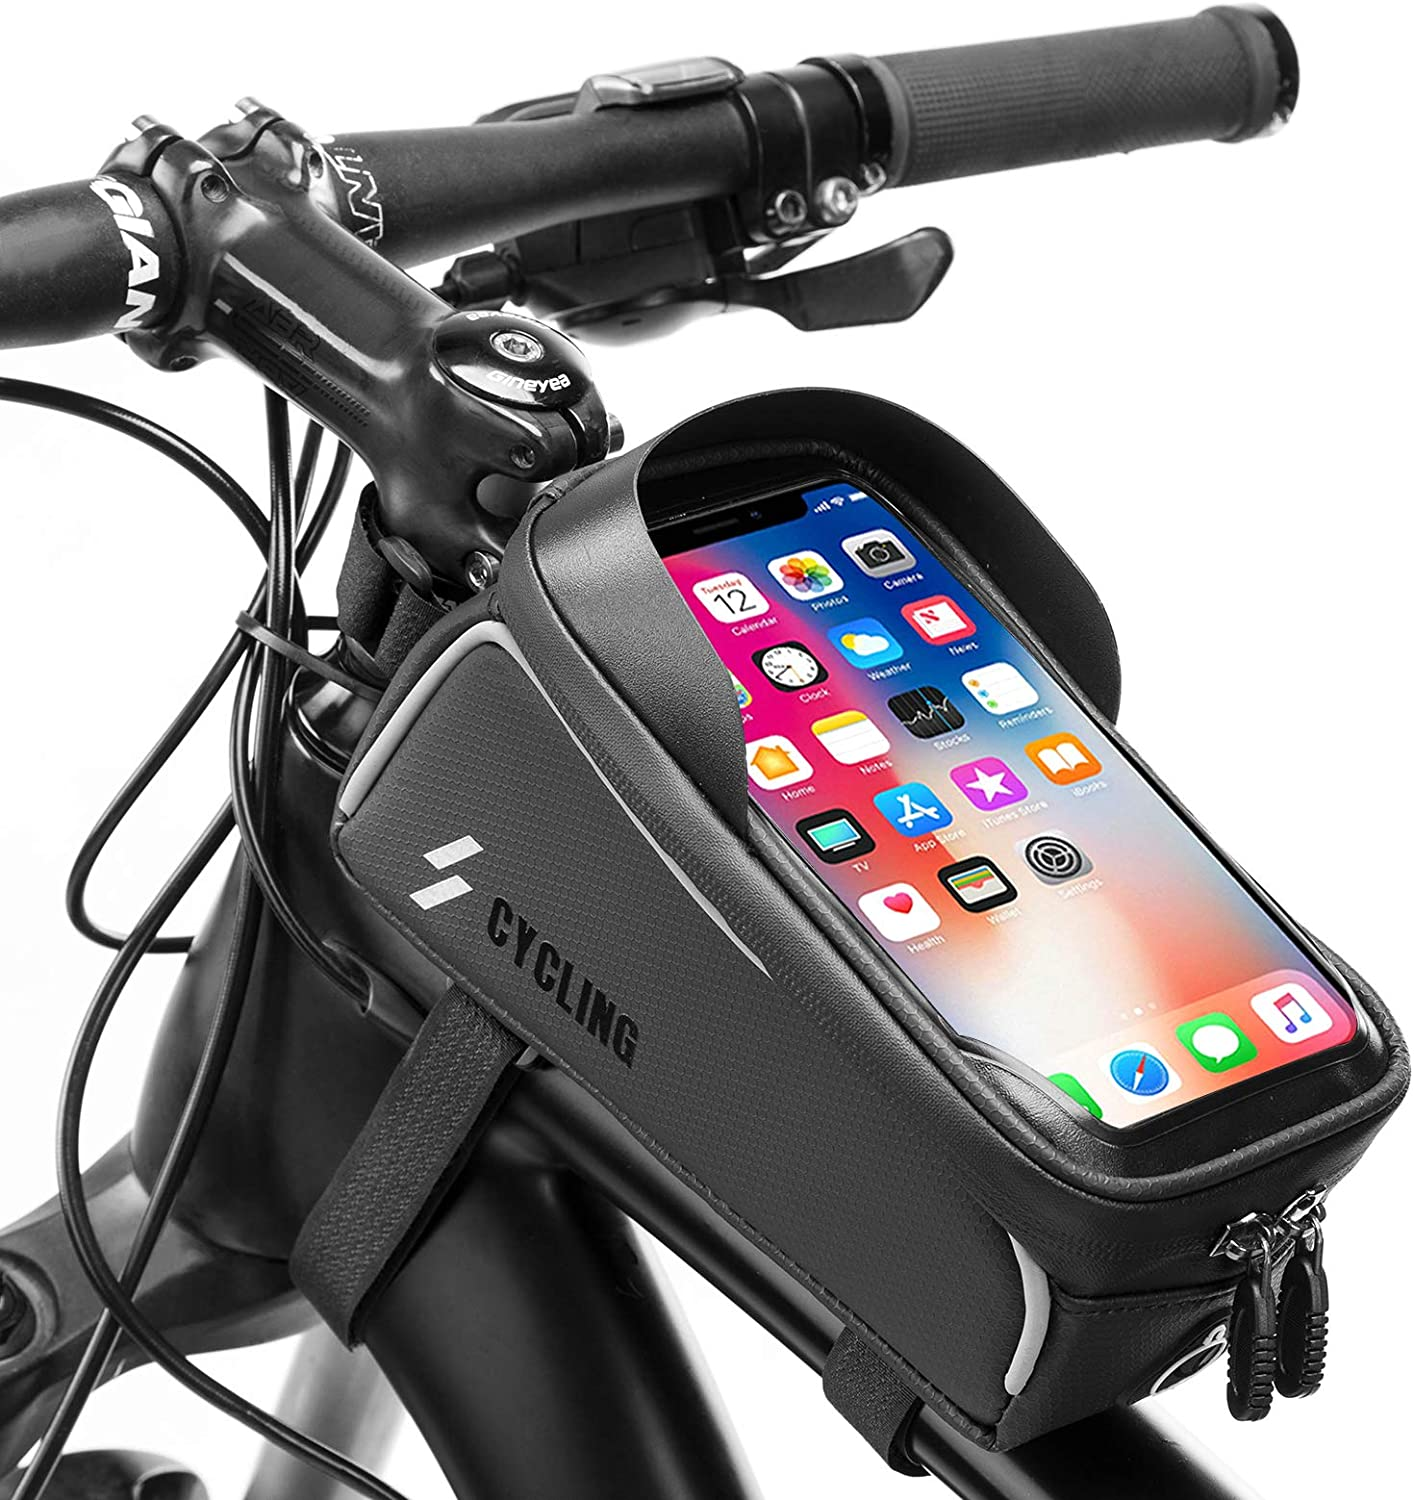 ROCKBROS Bike Front Frame Bag Waterproof Bike Phone Bag Top Tube Bag Touchscreen Sun Visor Large Capacity Bike Phone Case Compatible with iPhone 11 Pro Max/XR/XS Max 7/8 Plus